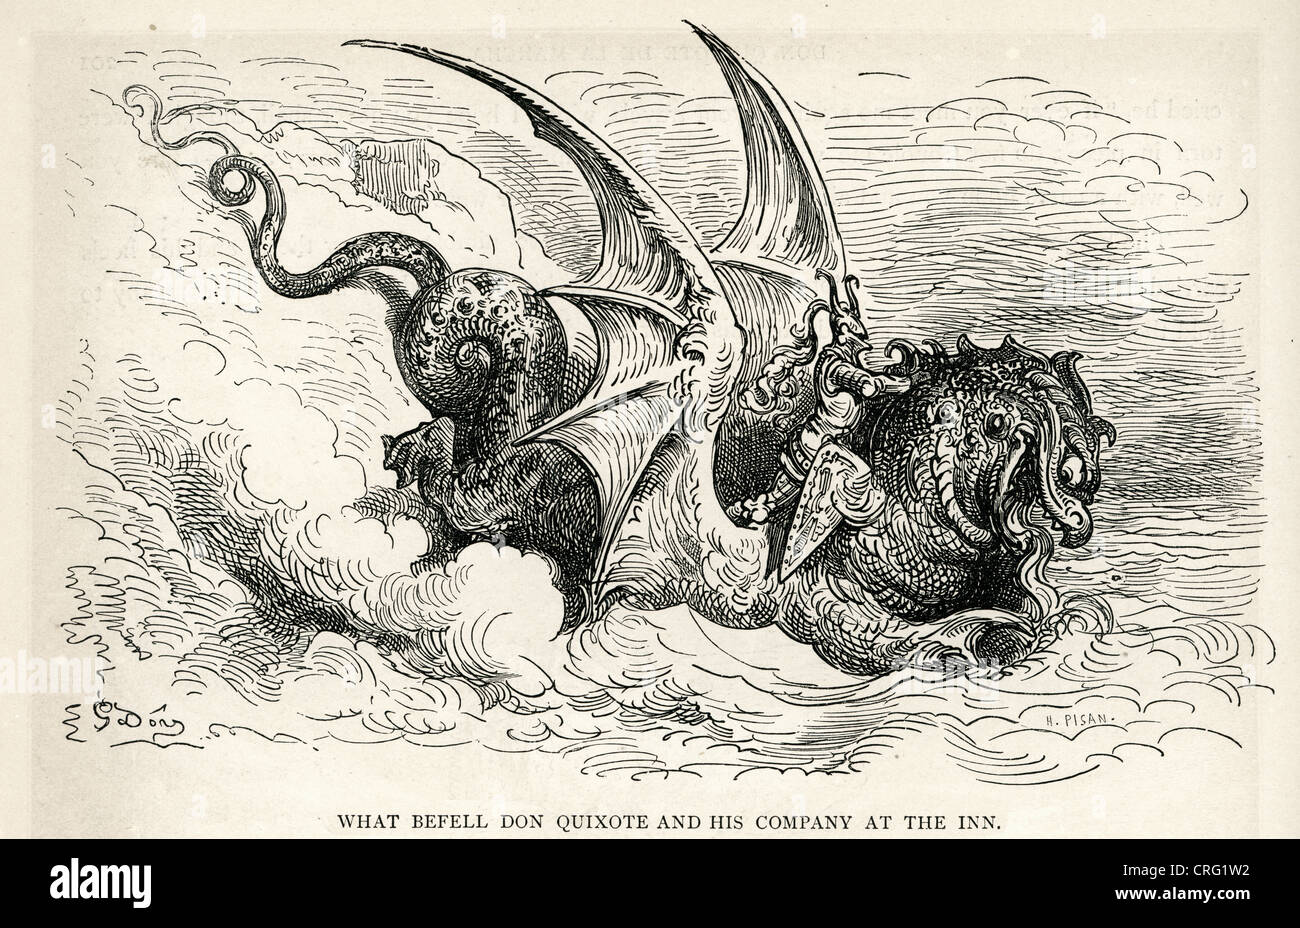 Knight and the Sea Monster. Illustration by Gustave Dore from Don Quixote. - Stock Image